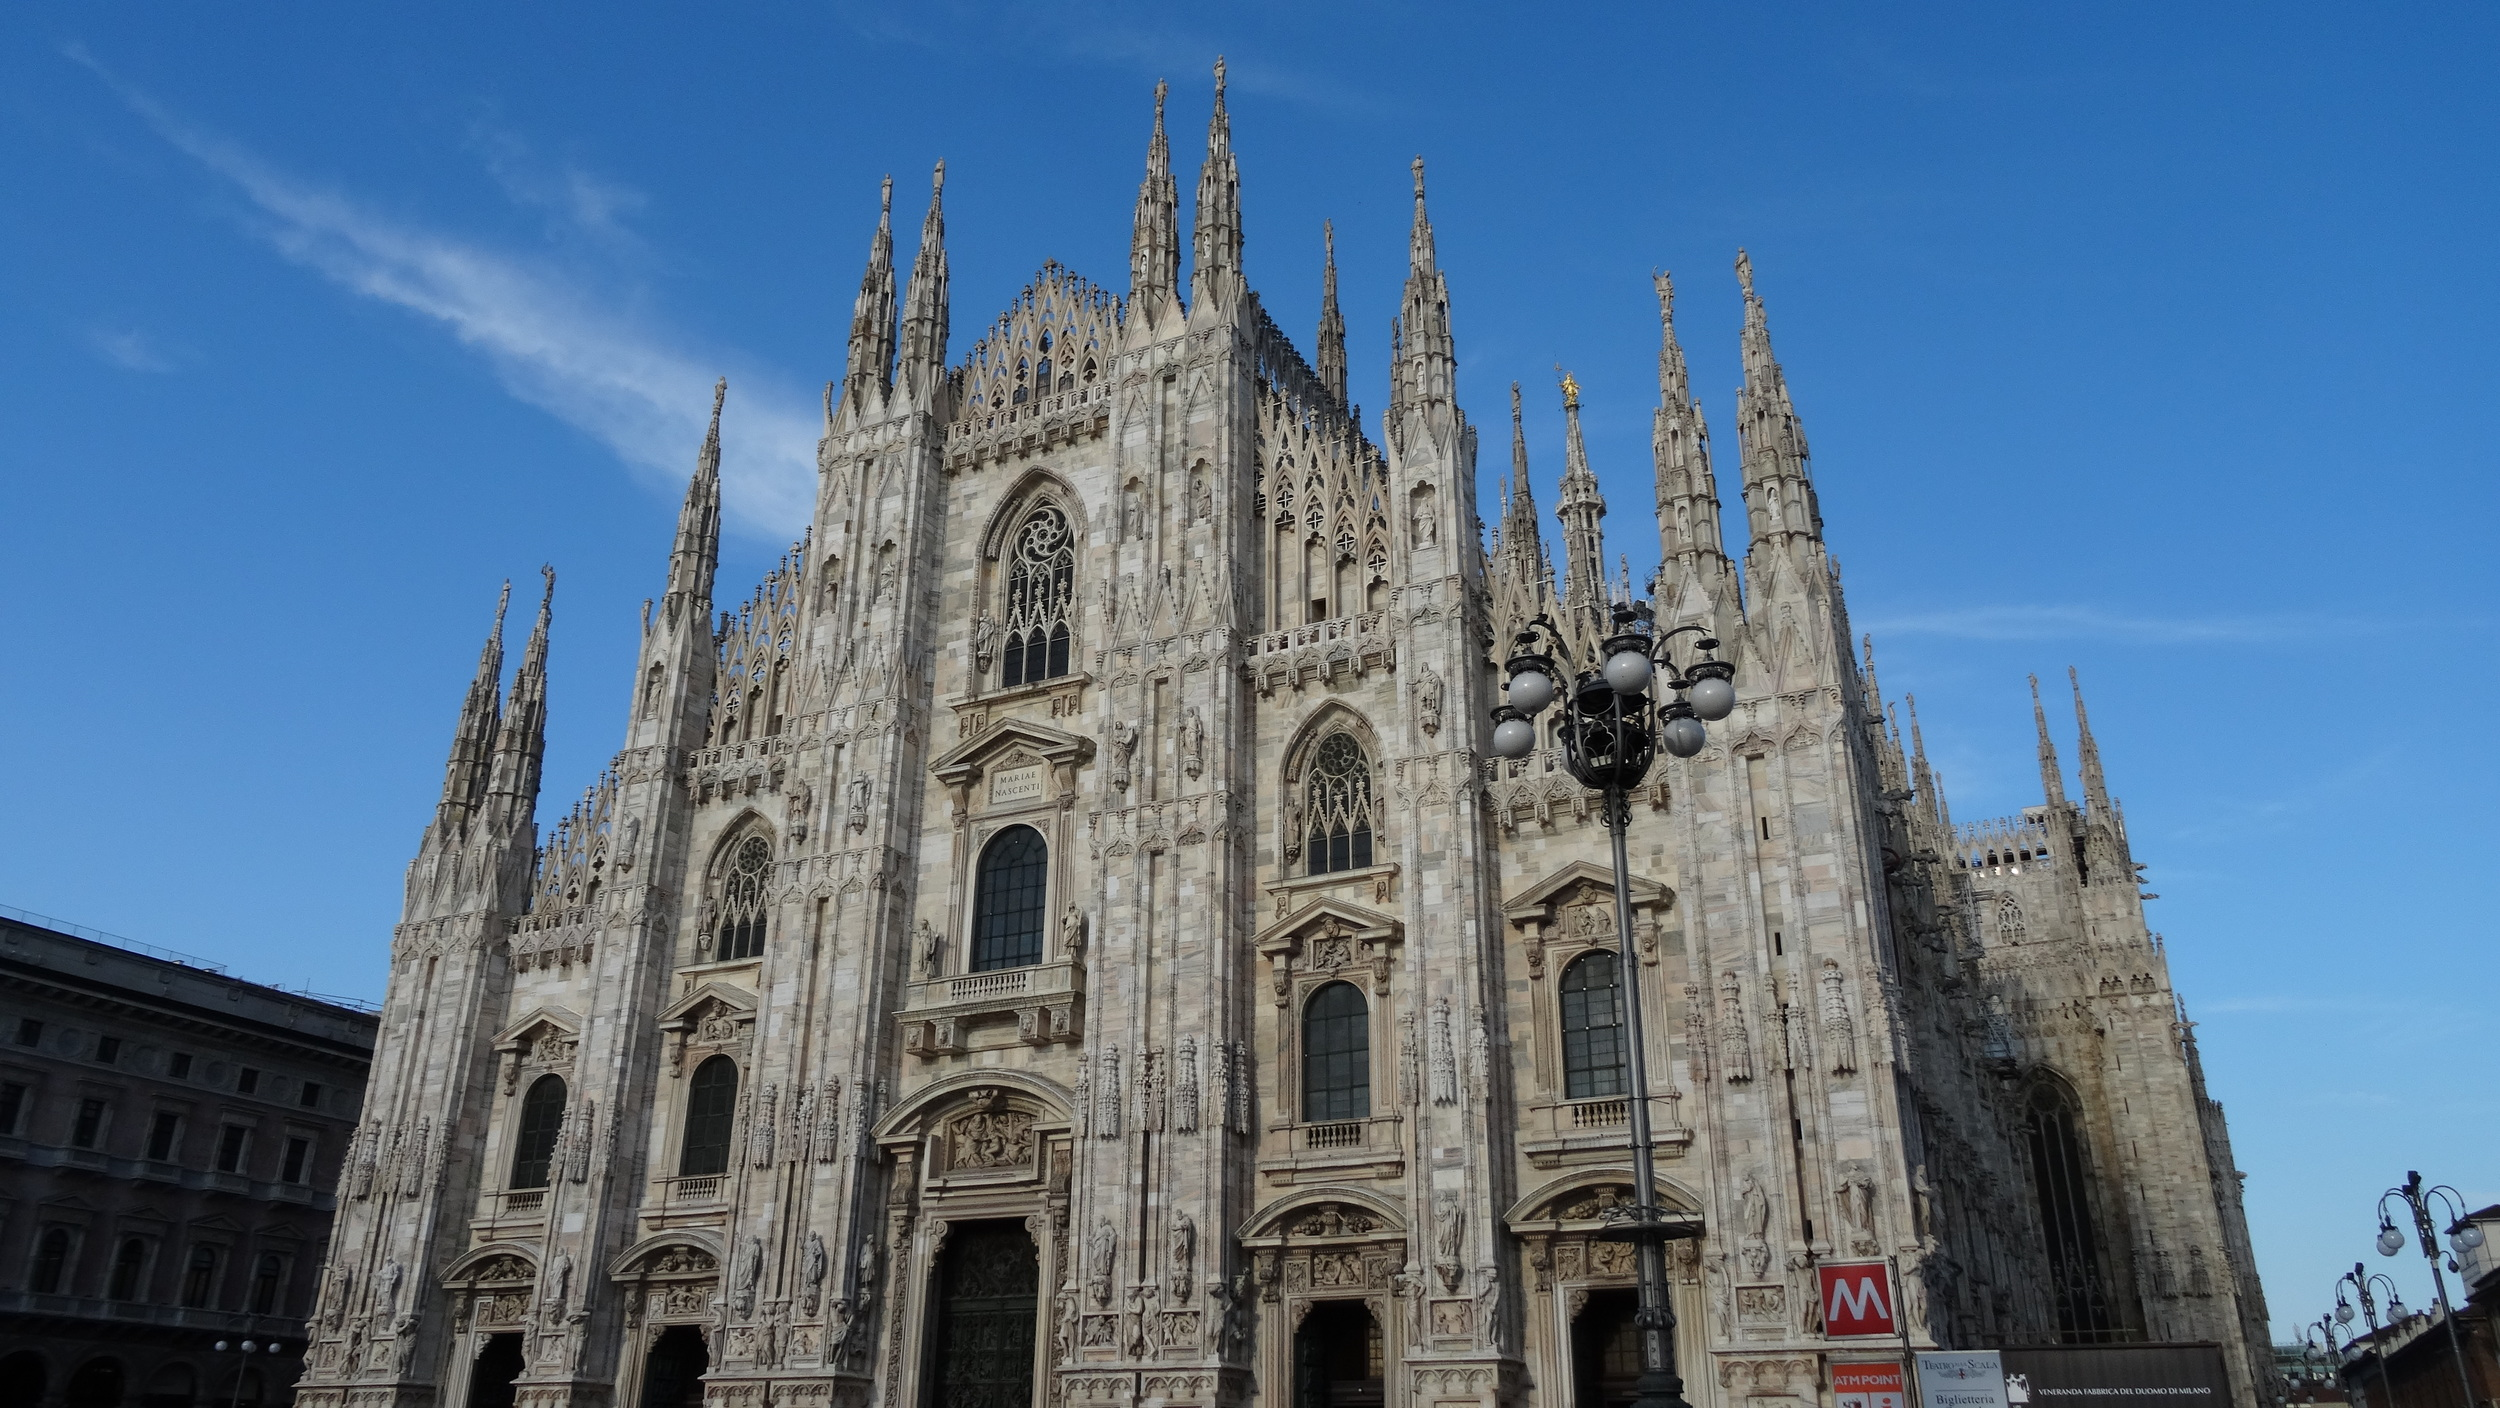 Dumo di Milano. One of the most magnificent cathedrals I've ever seen, and there's a bunch of good ones in Europe.